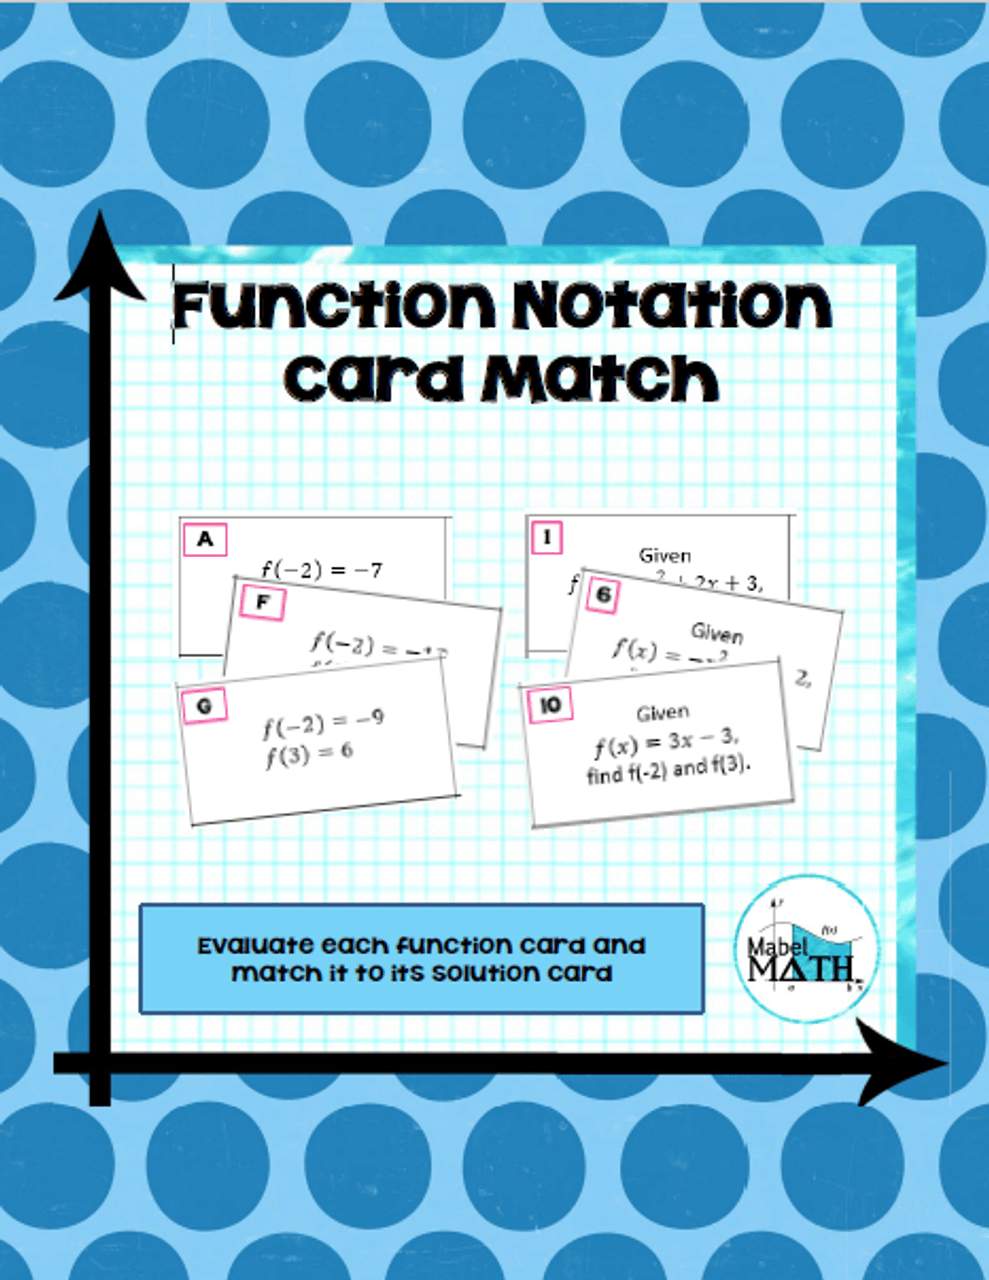 Function Notation Card Match - Amped Up Learning [ 1280 x 989 Pixel ]